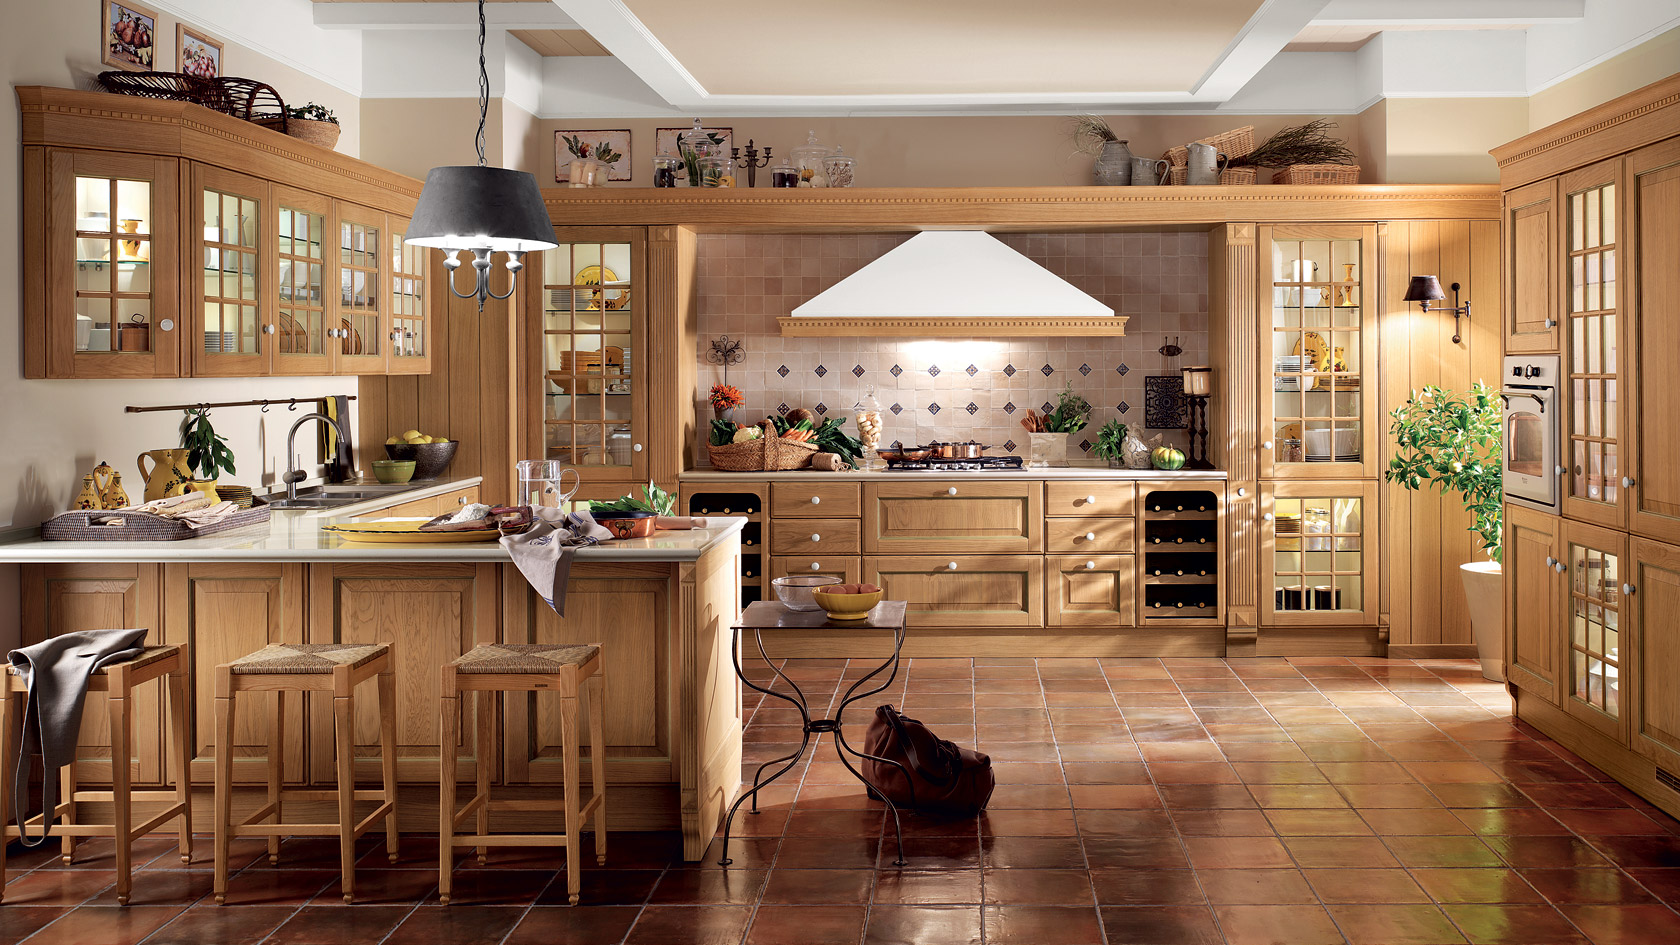 Cucine in stile country   fotogallery donnaclick